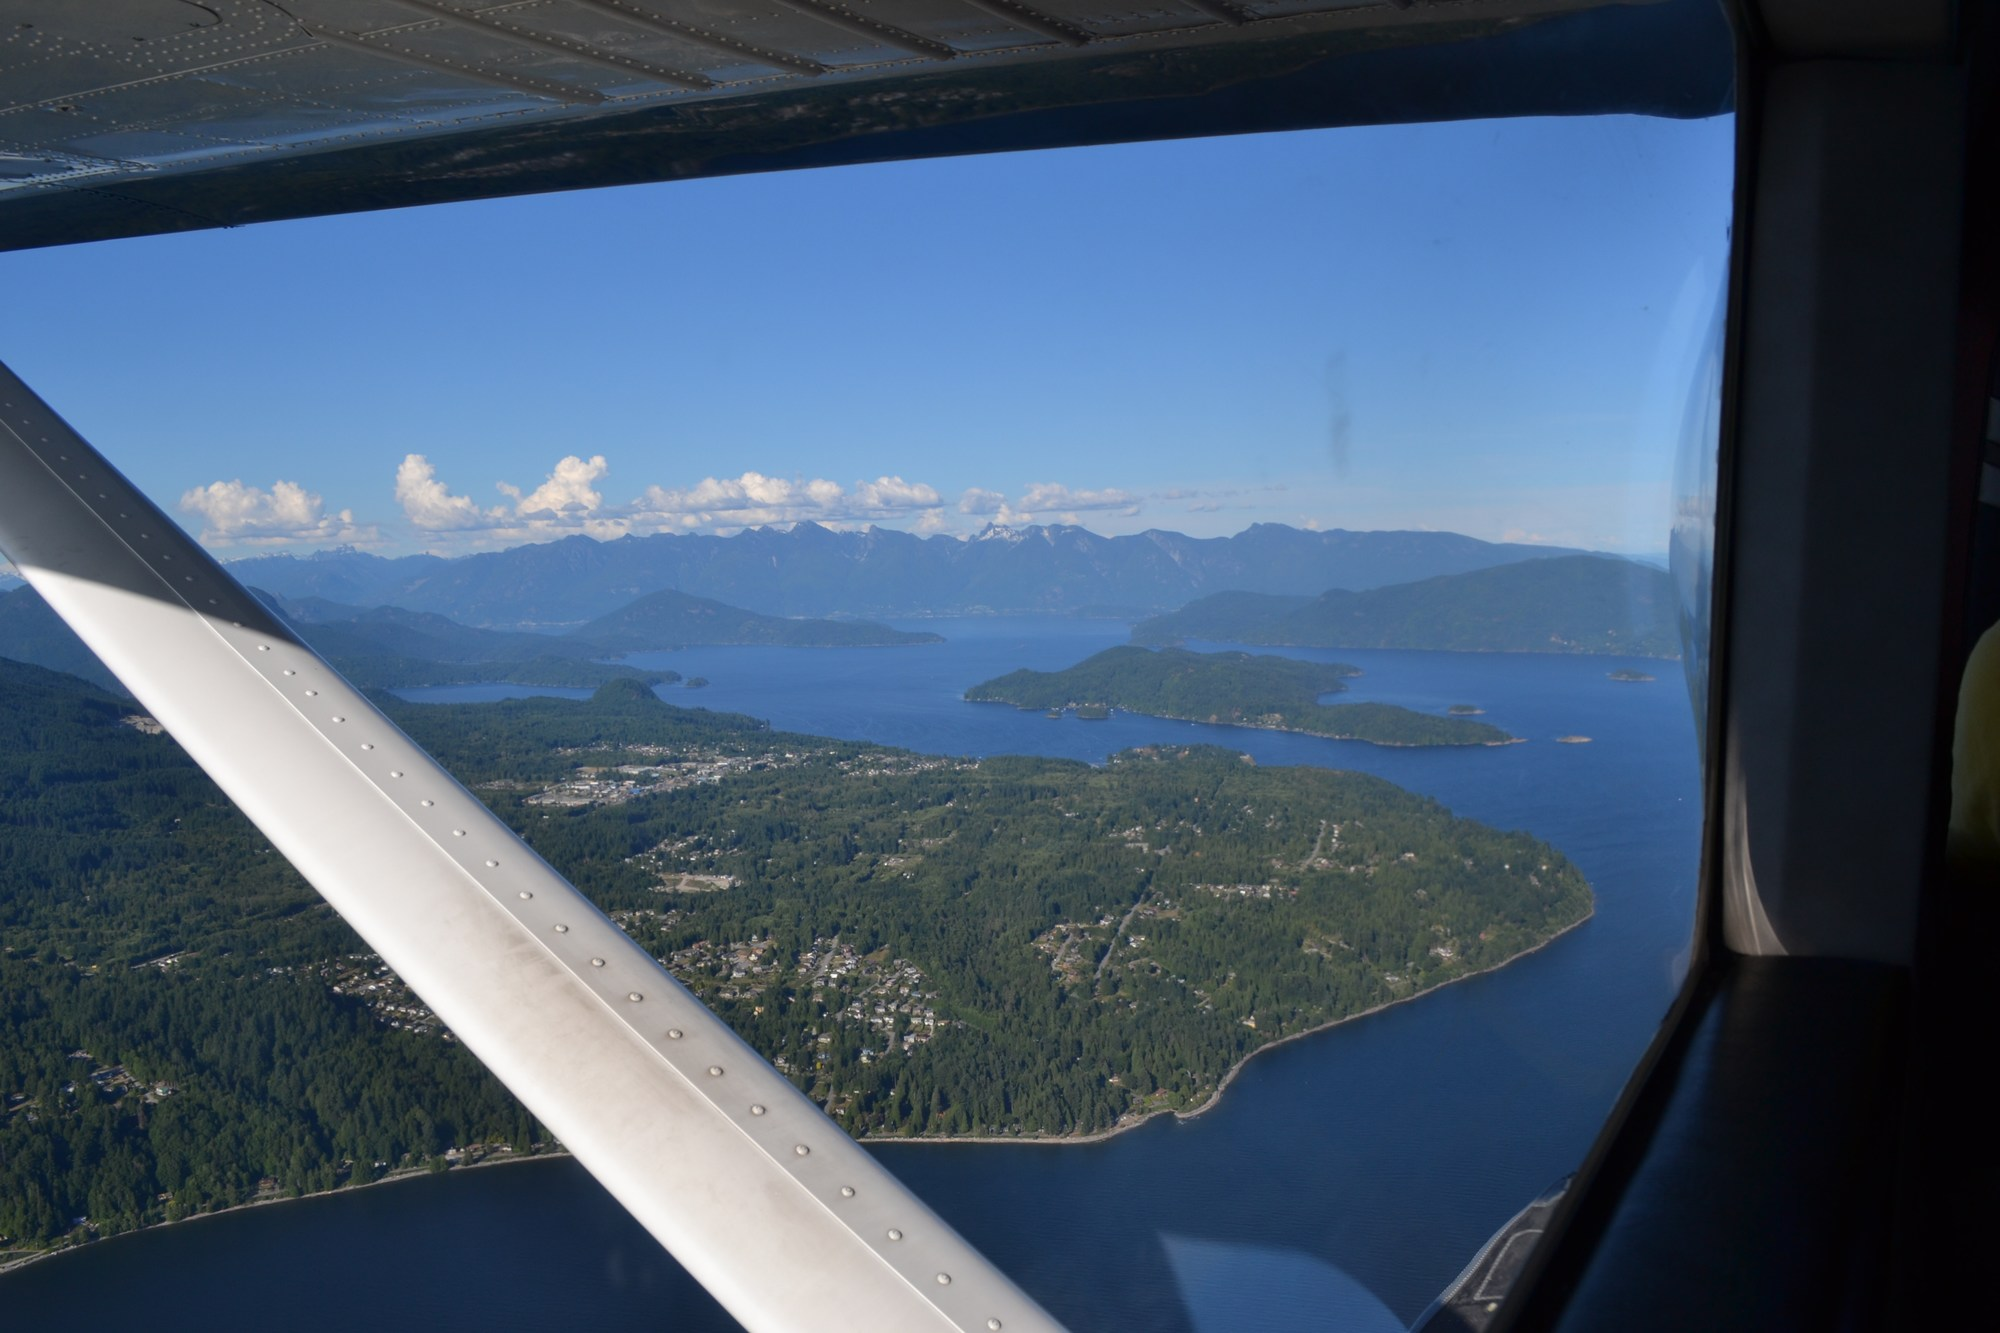 Town of Gibsons on the Sunshine Coast near Metro Vancouver. Howe Sound is in the background.